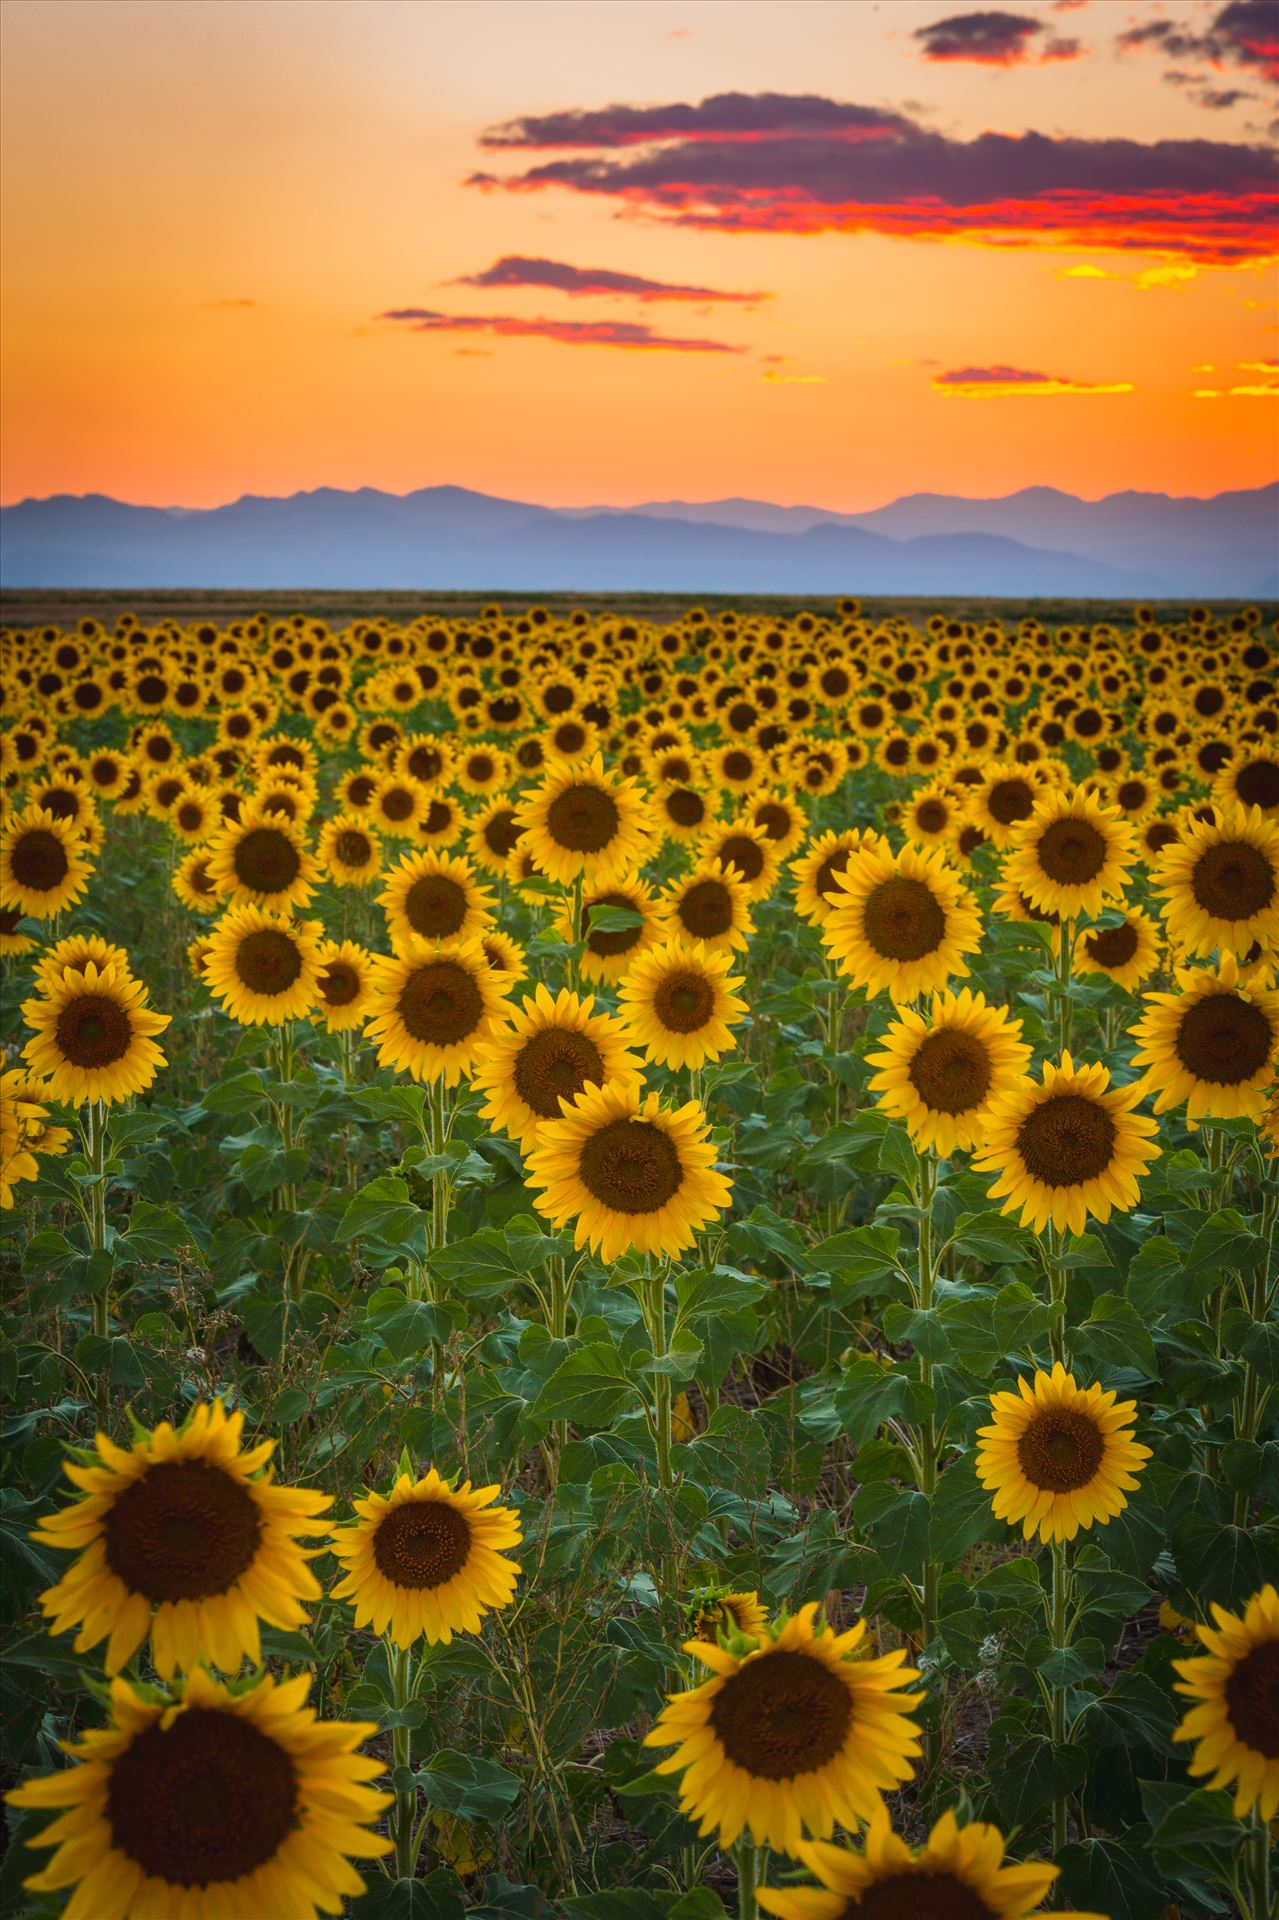 Denver Sunflowers at Sunset No 2 - Sunflower fields near Denver International Airport, on August 20th, 2016. Near 56th and E470. by D Scott Smith